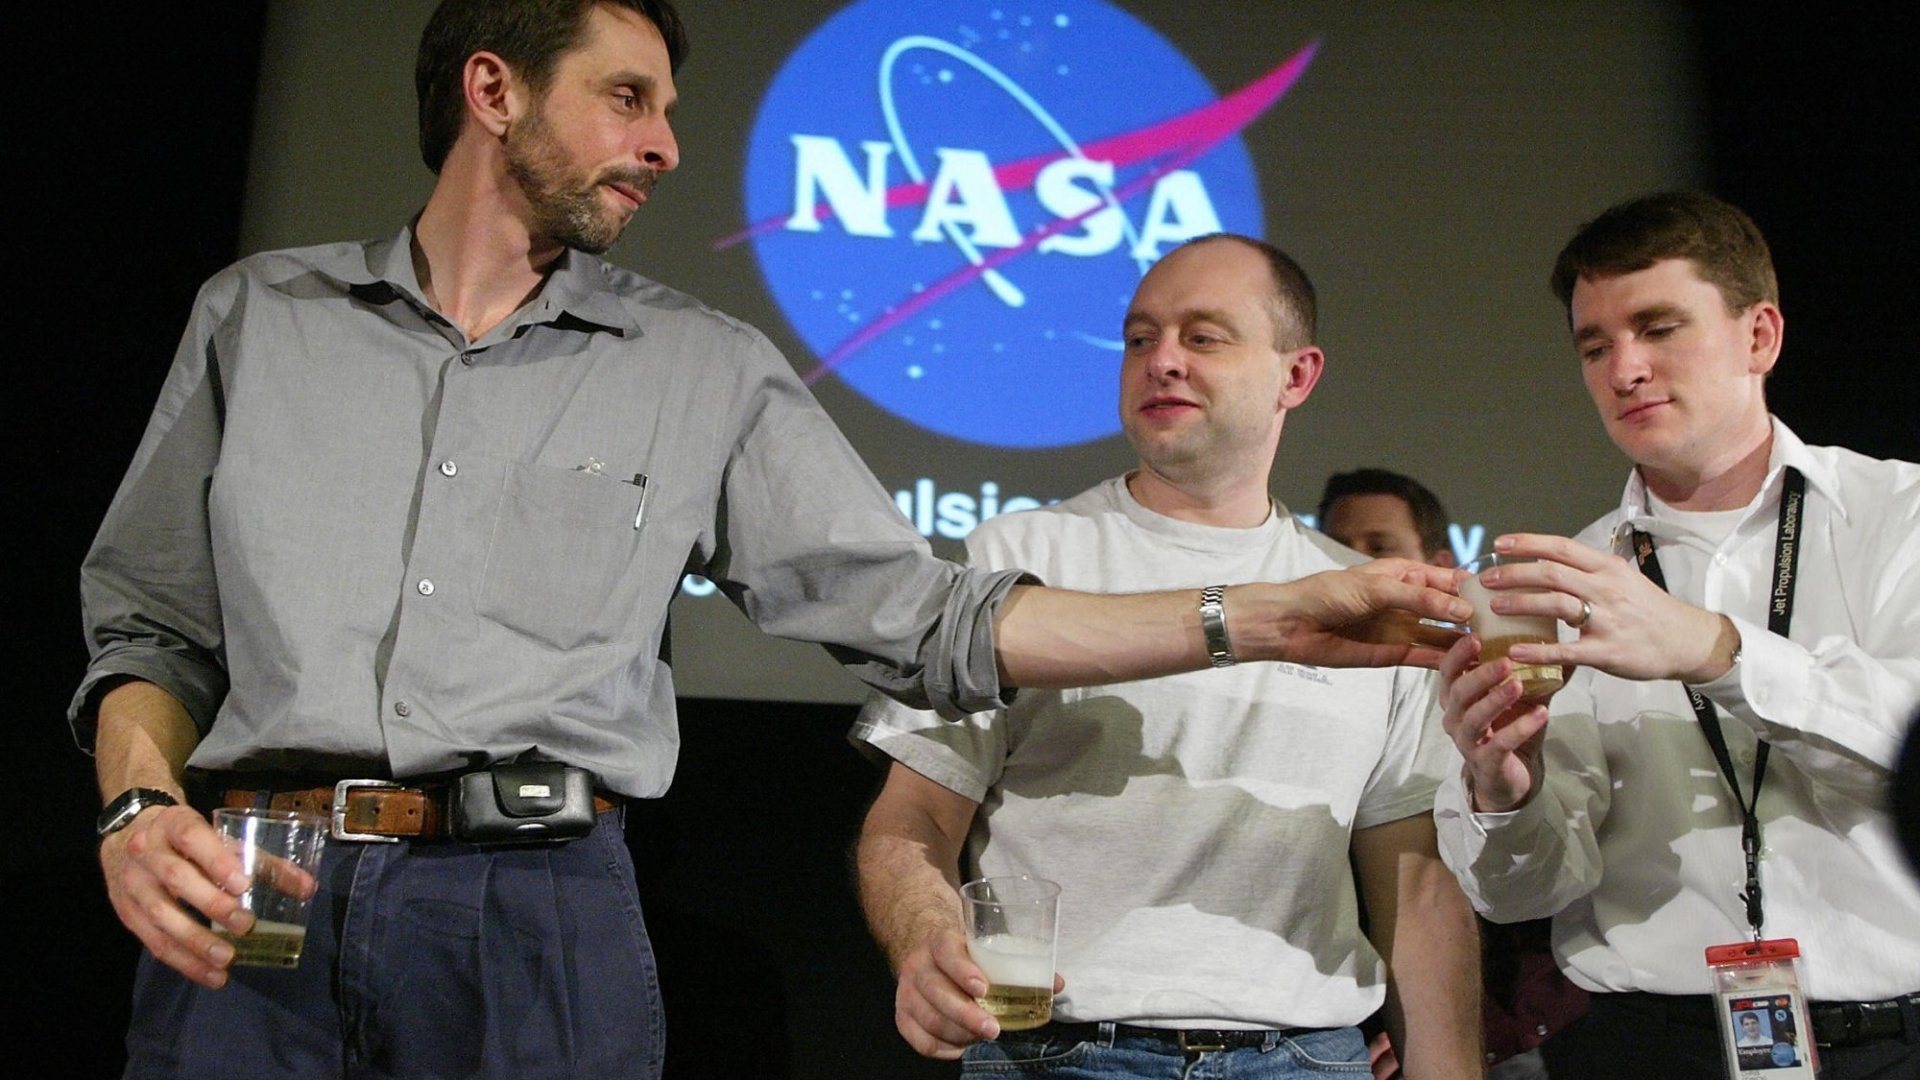 Chris Lewicki, pictured on the right, was the flight director for the Mars Exploration Rover at NASA's Jet Propulsion Laboratory, where he was part of the team that successfully landed the rover Opportunity and the Phoenix on Mars. Now he has his mind set on private space mining.